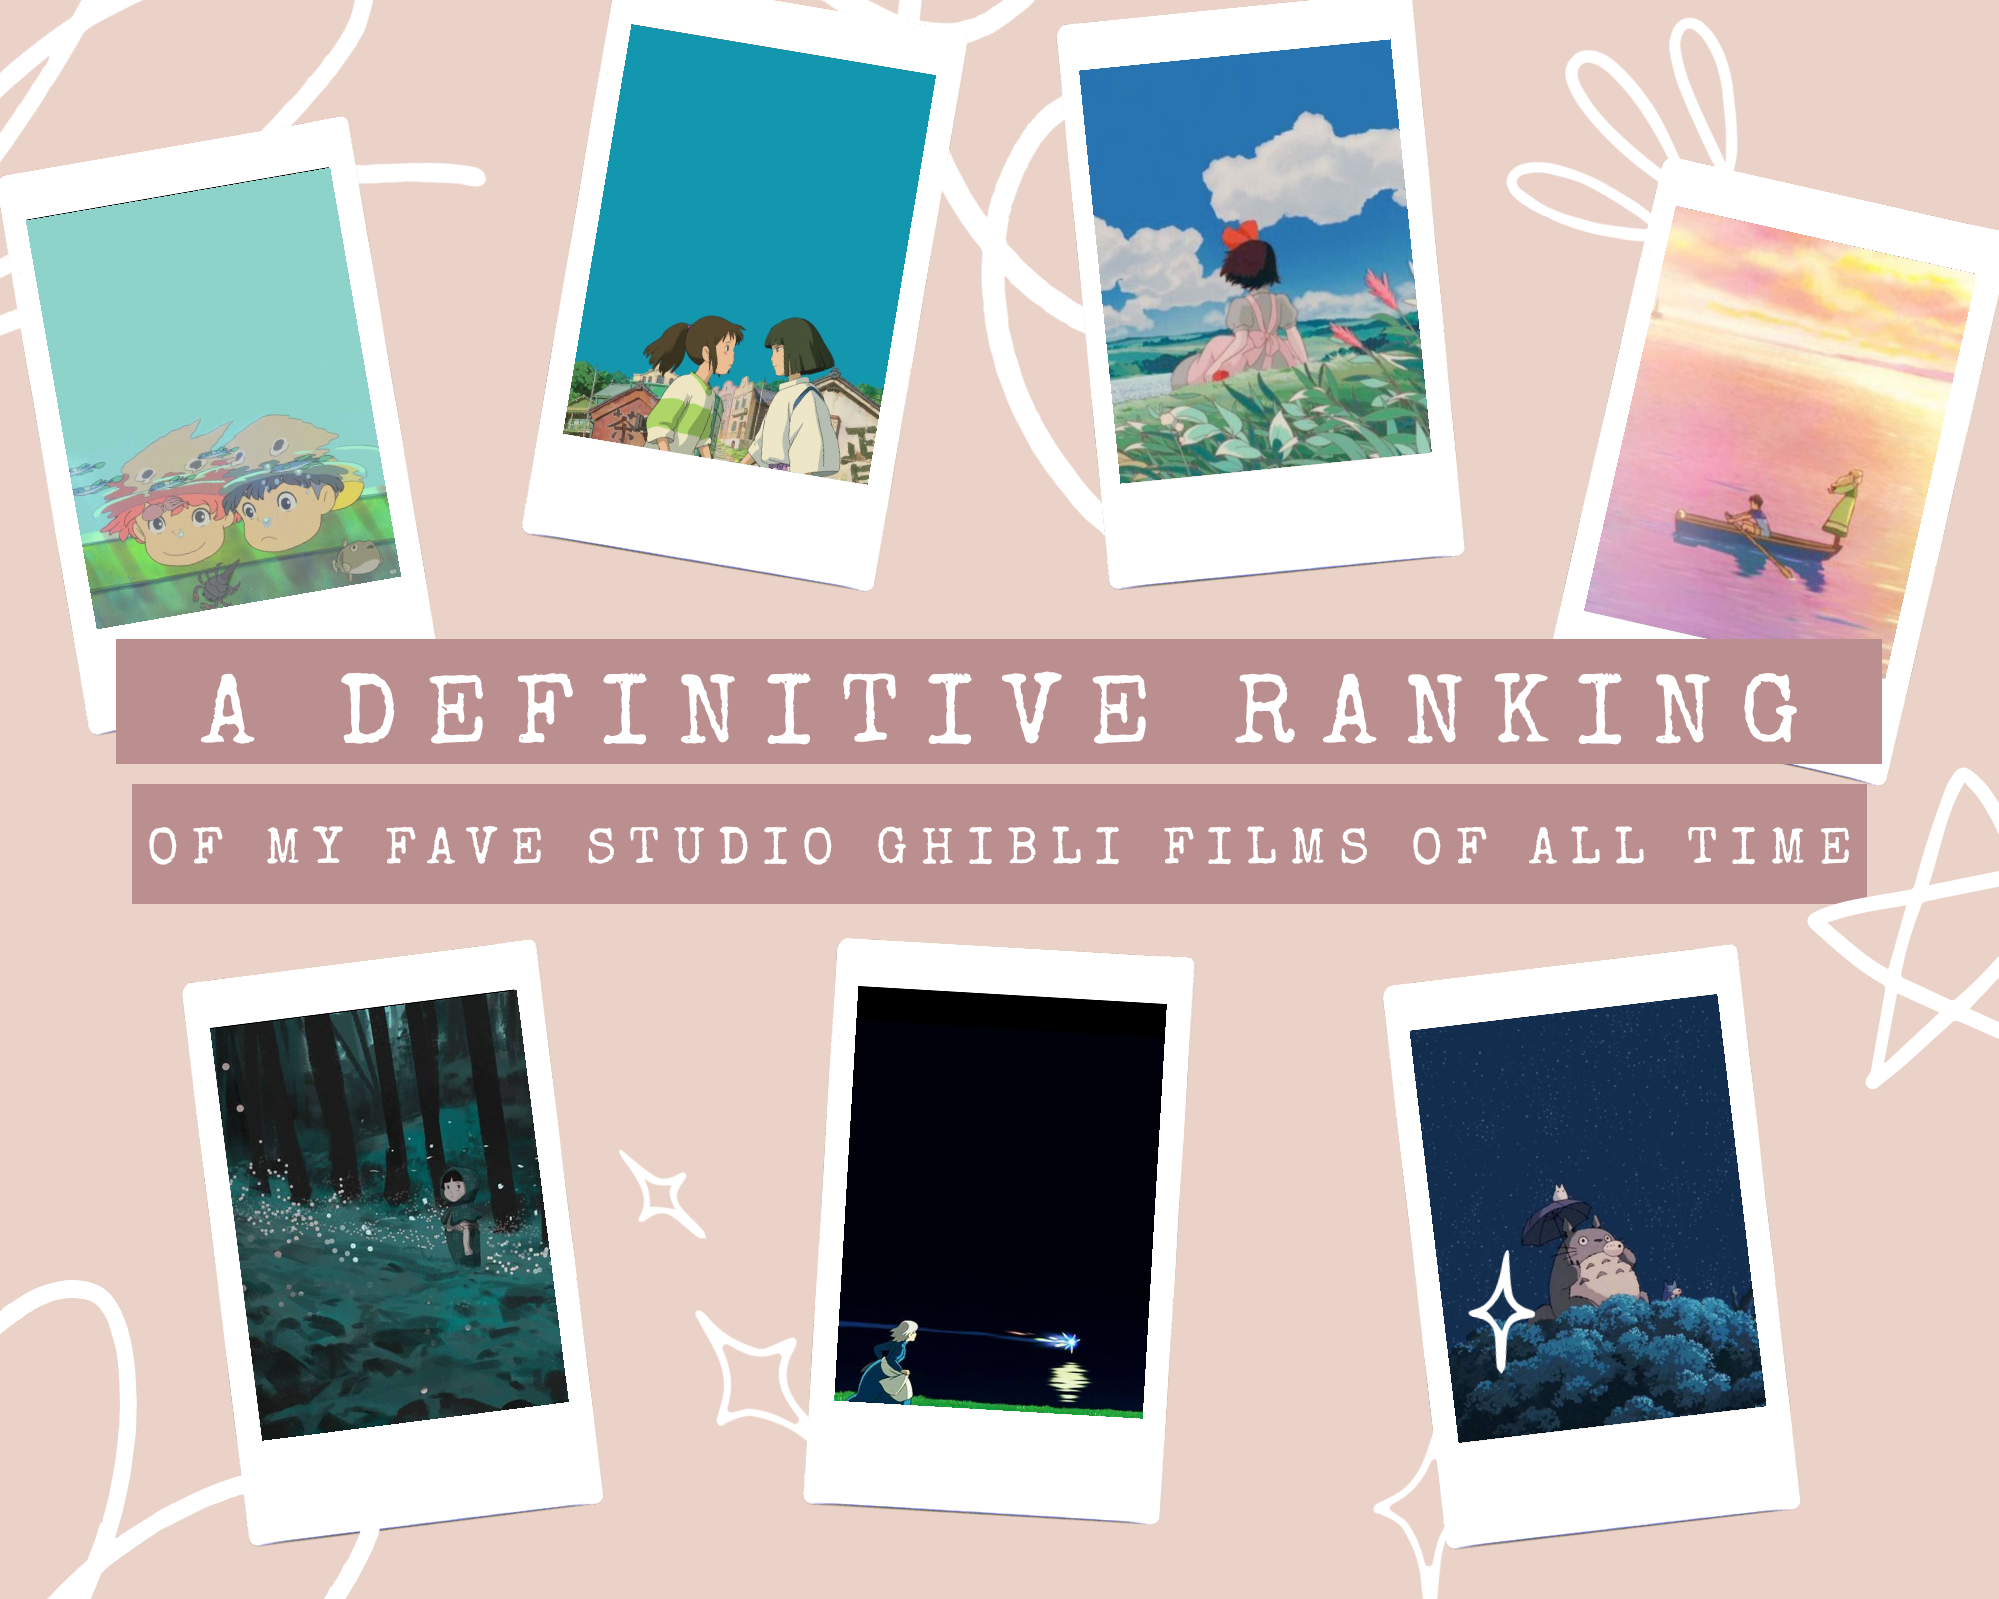 A Definitive Ranking of My Favorite Ghibli FIlms of All Time